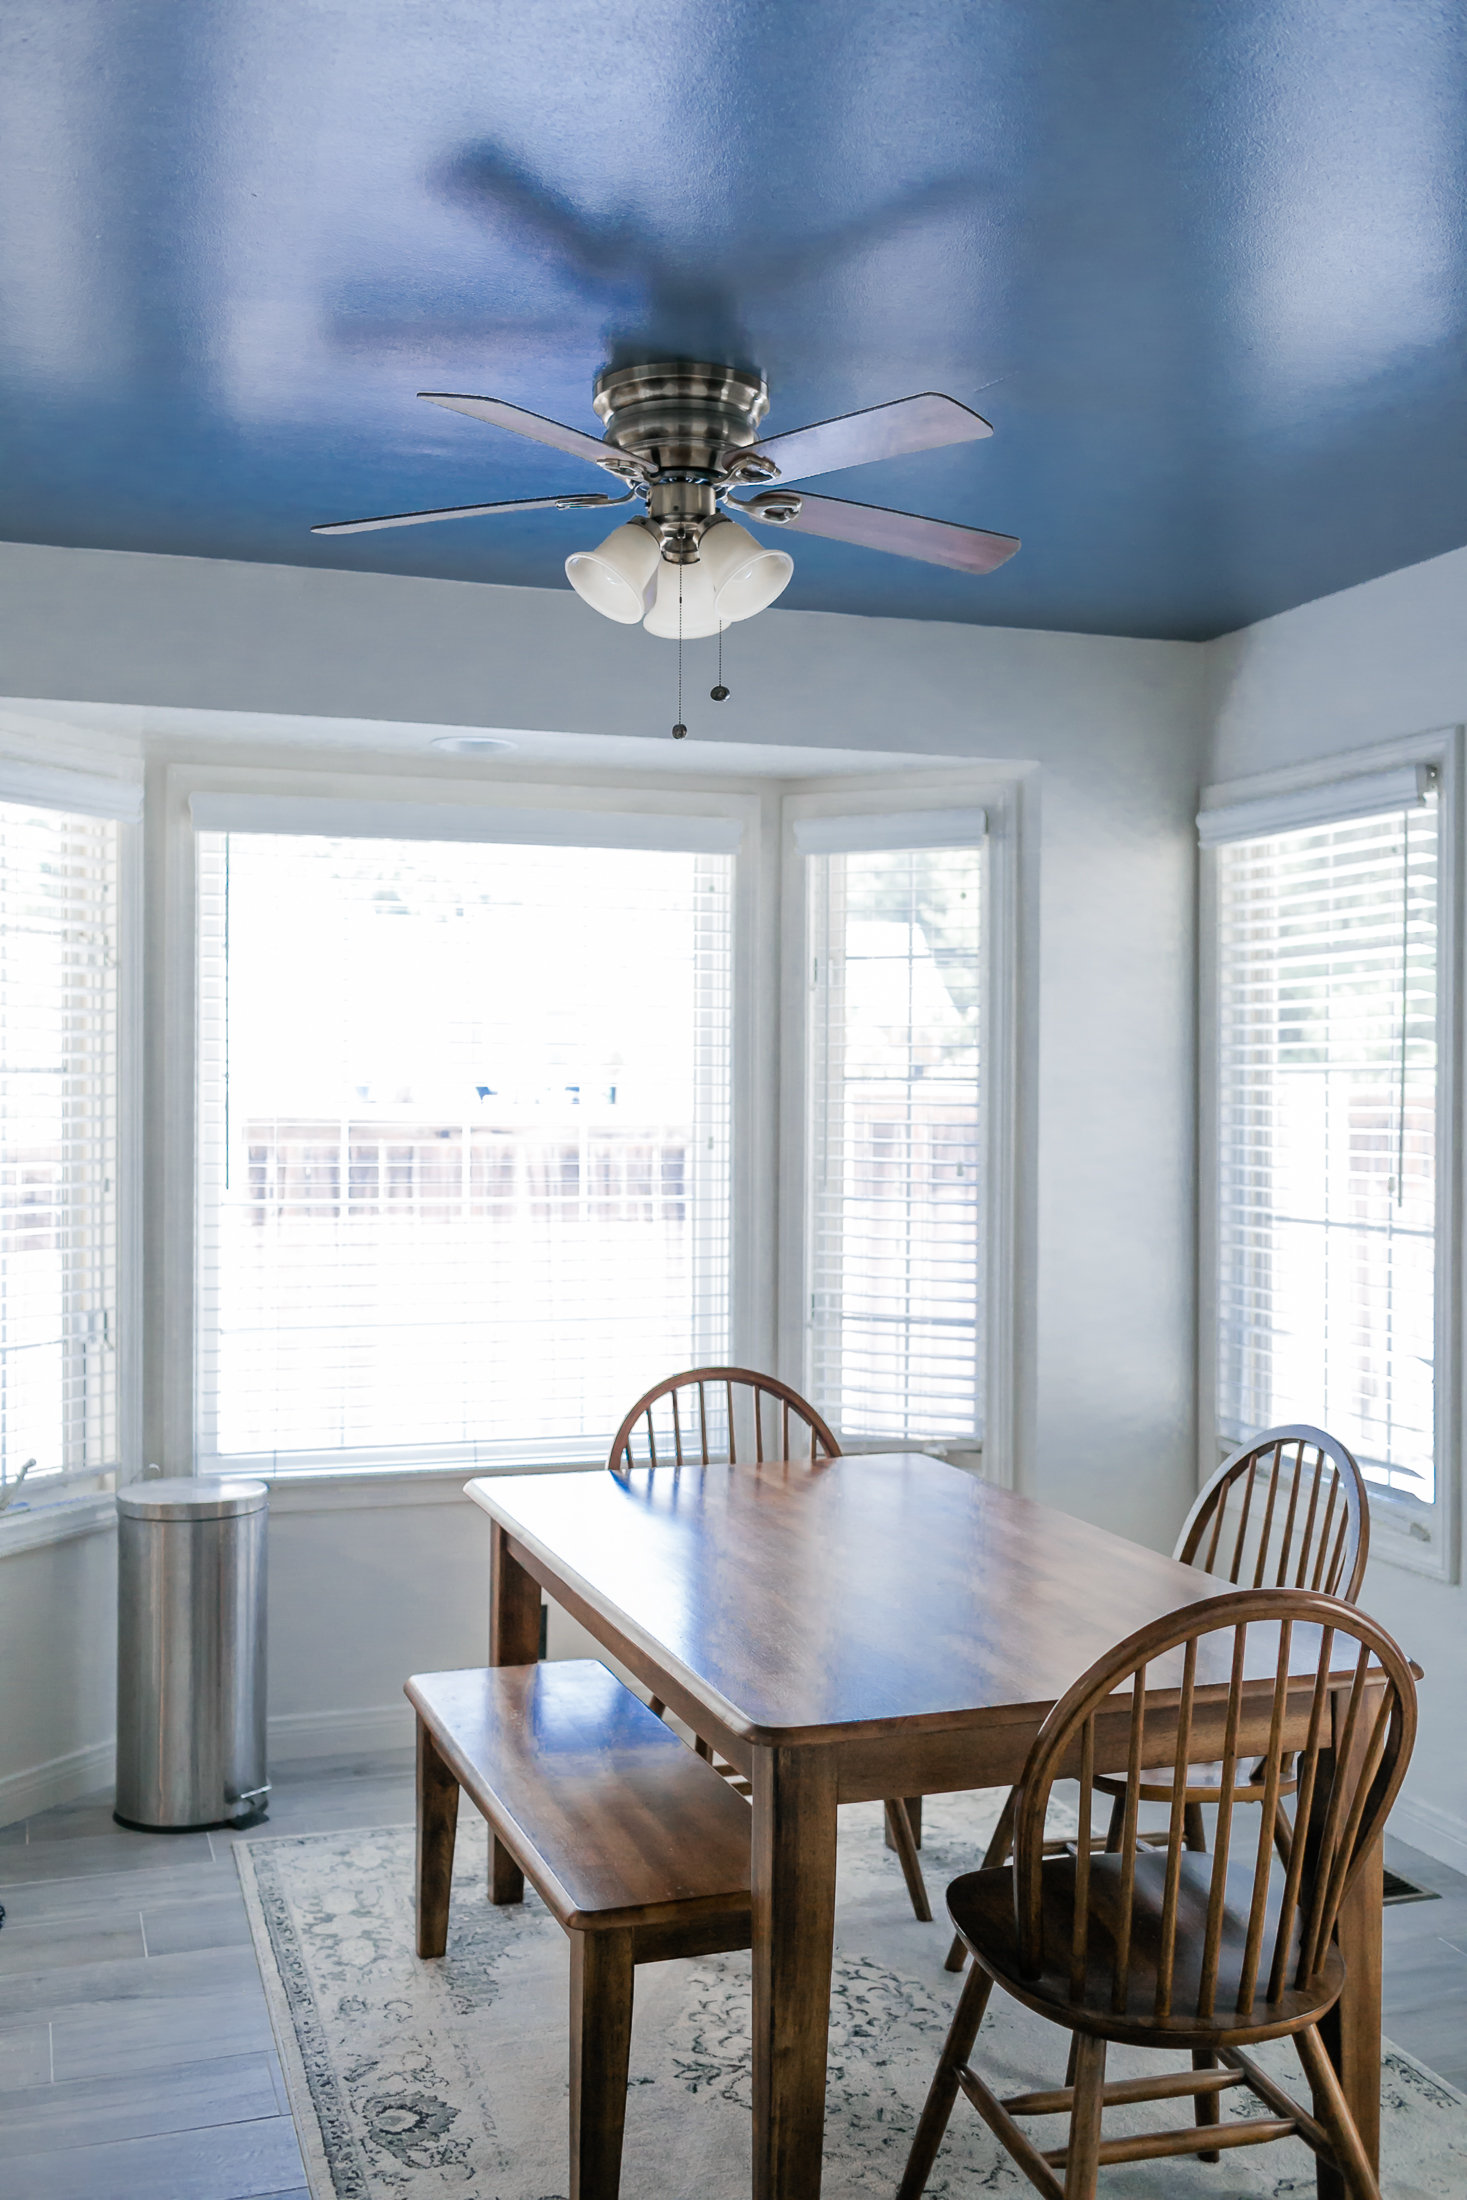 very blue kitchen, Kitchen, Dining Room, remodel, painted ceiling, dmv interior designer, bowie maryland, washington dc, pulls, painted ceiling